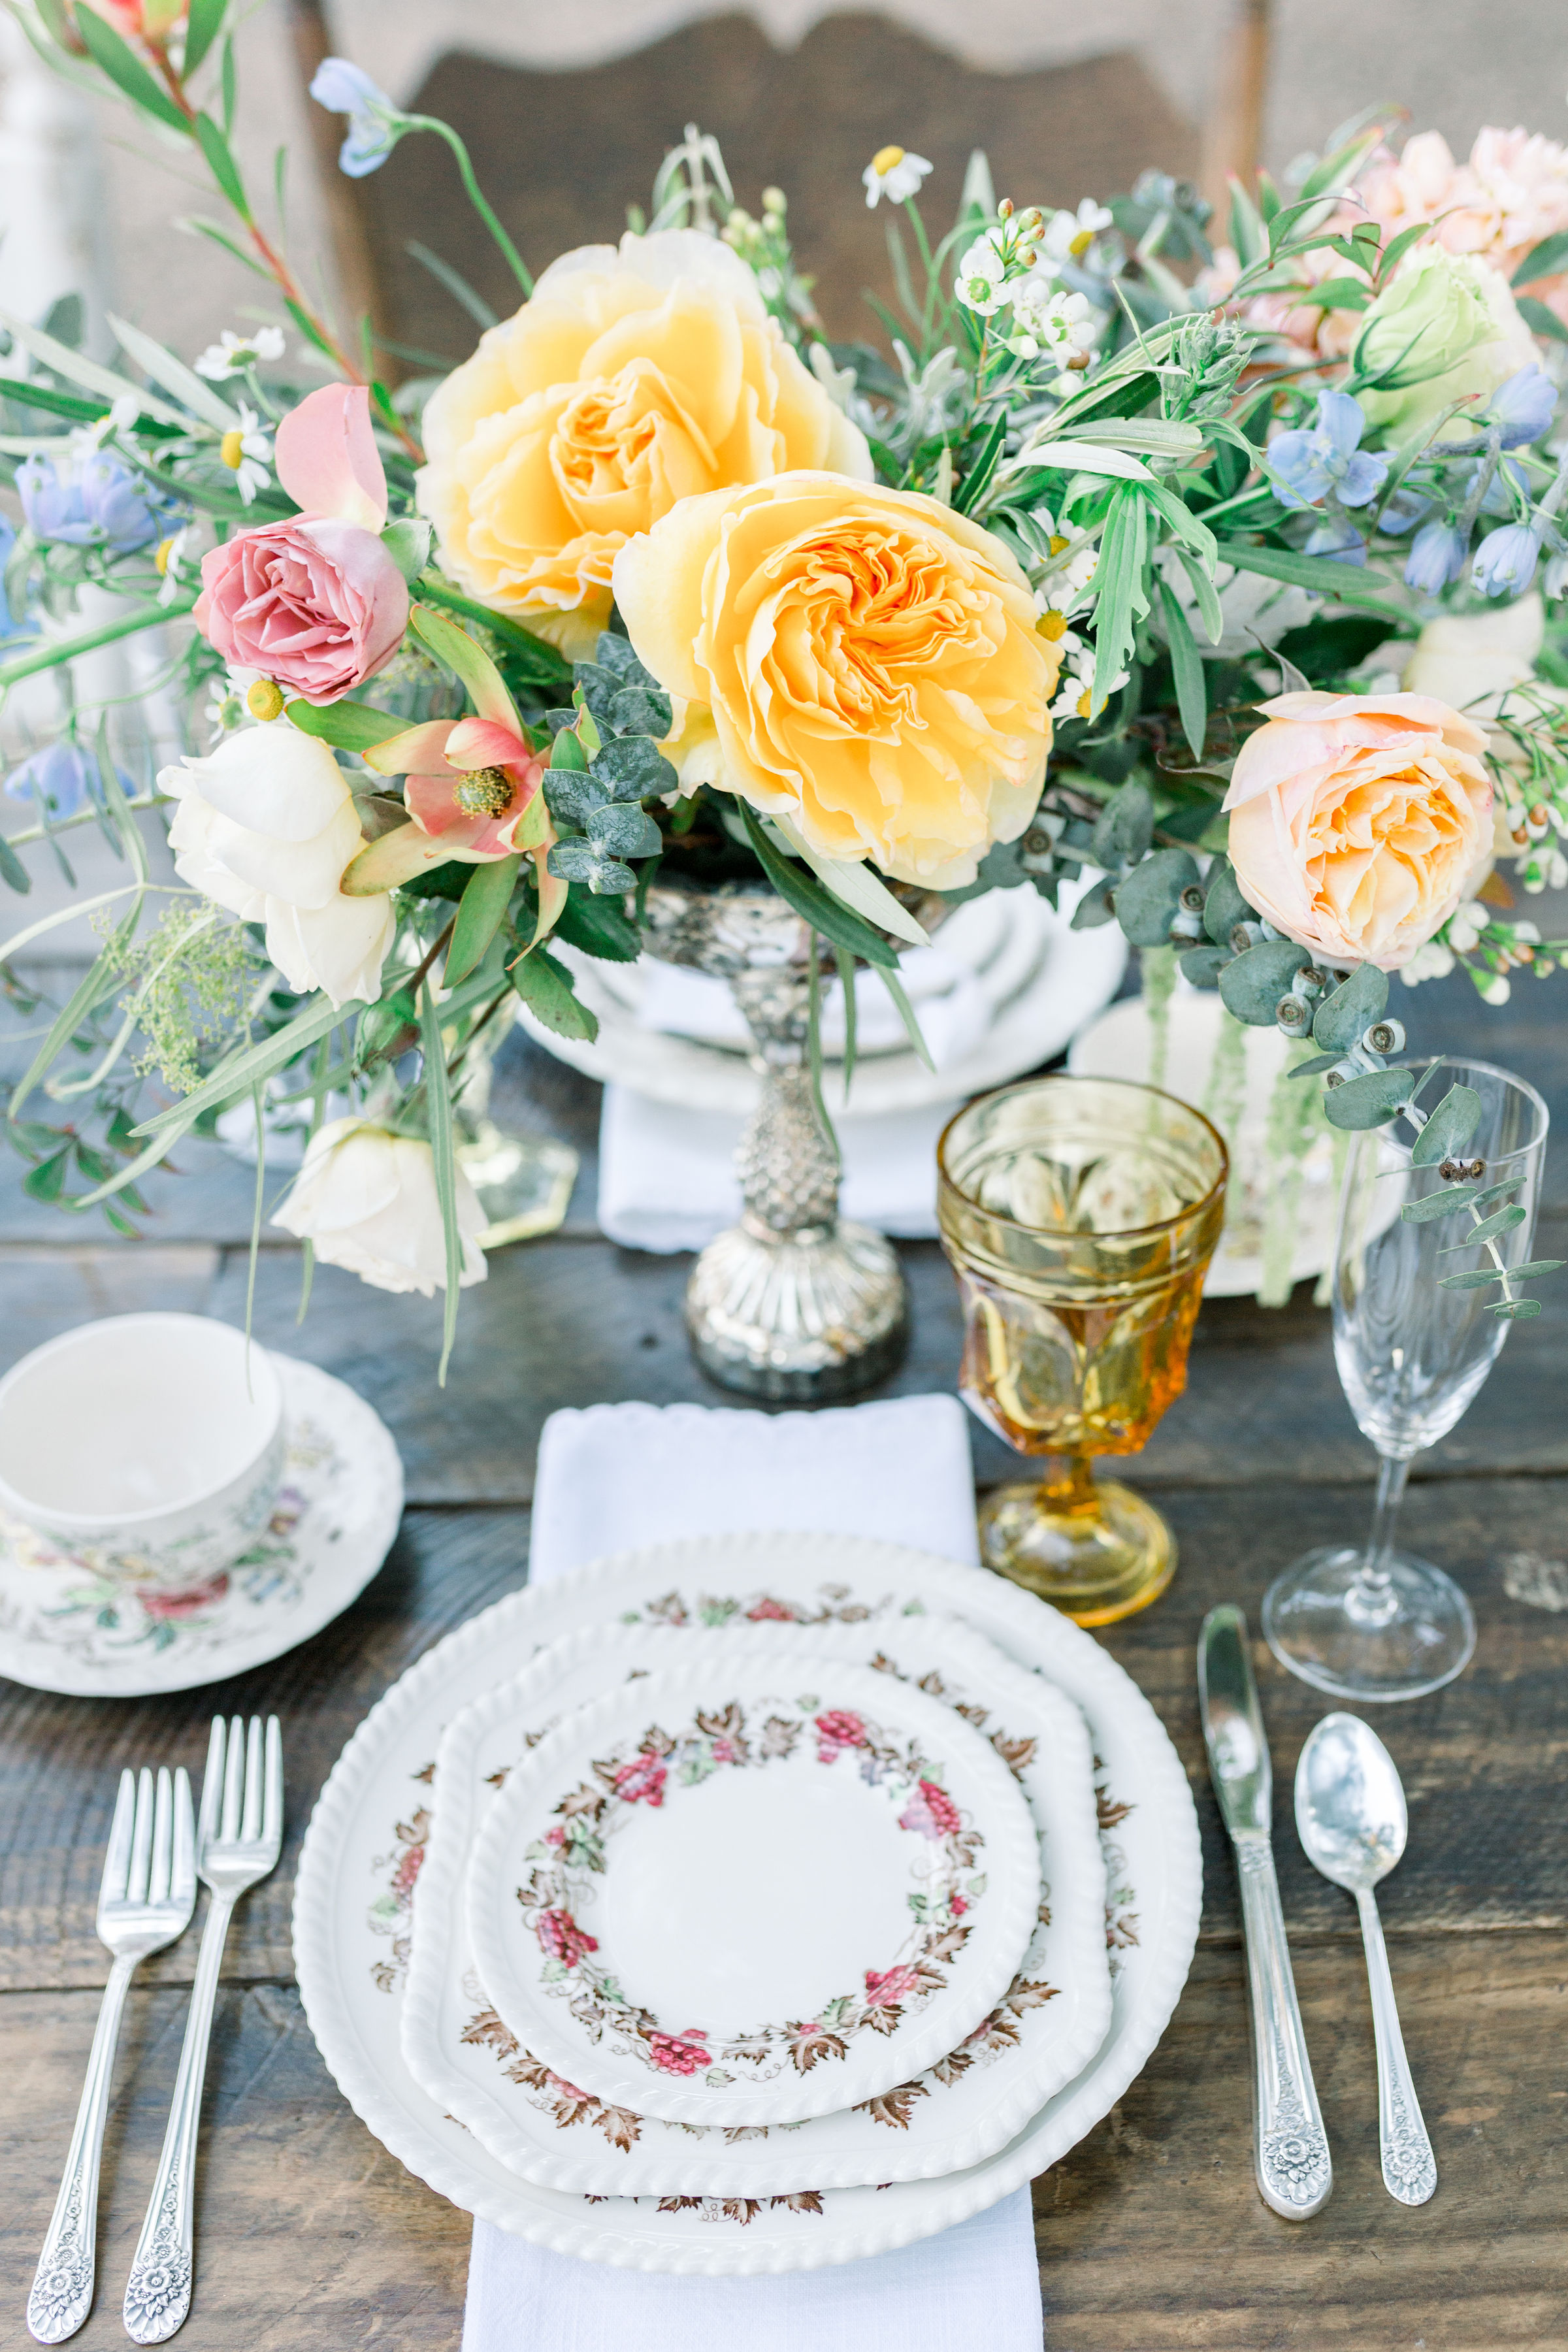 Staffordshire china was used in the individual place settings on the table. Also, we used vintage silver.